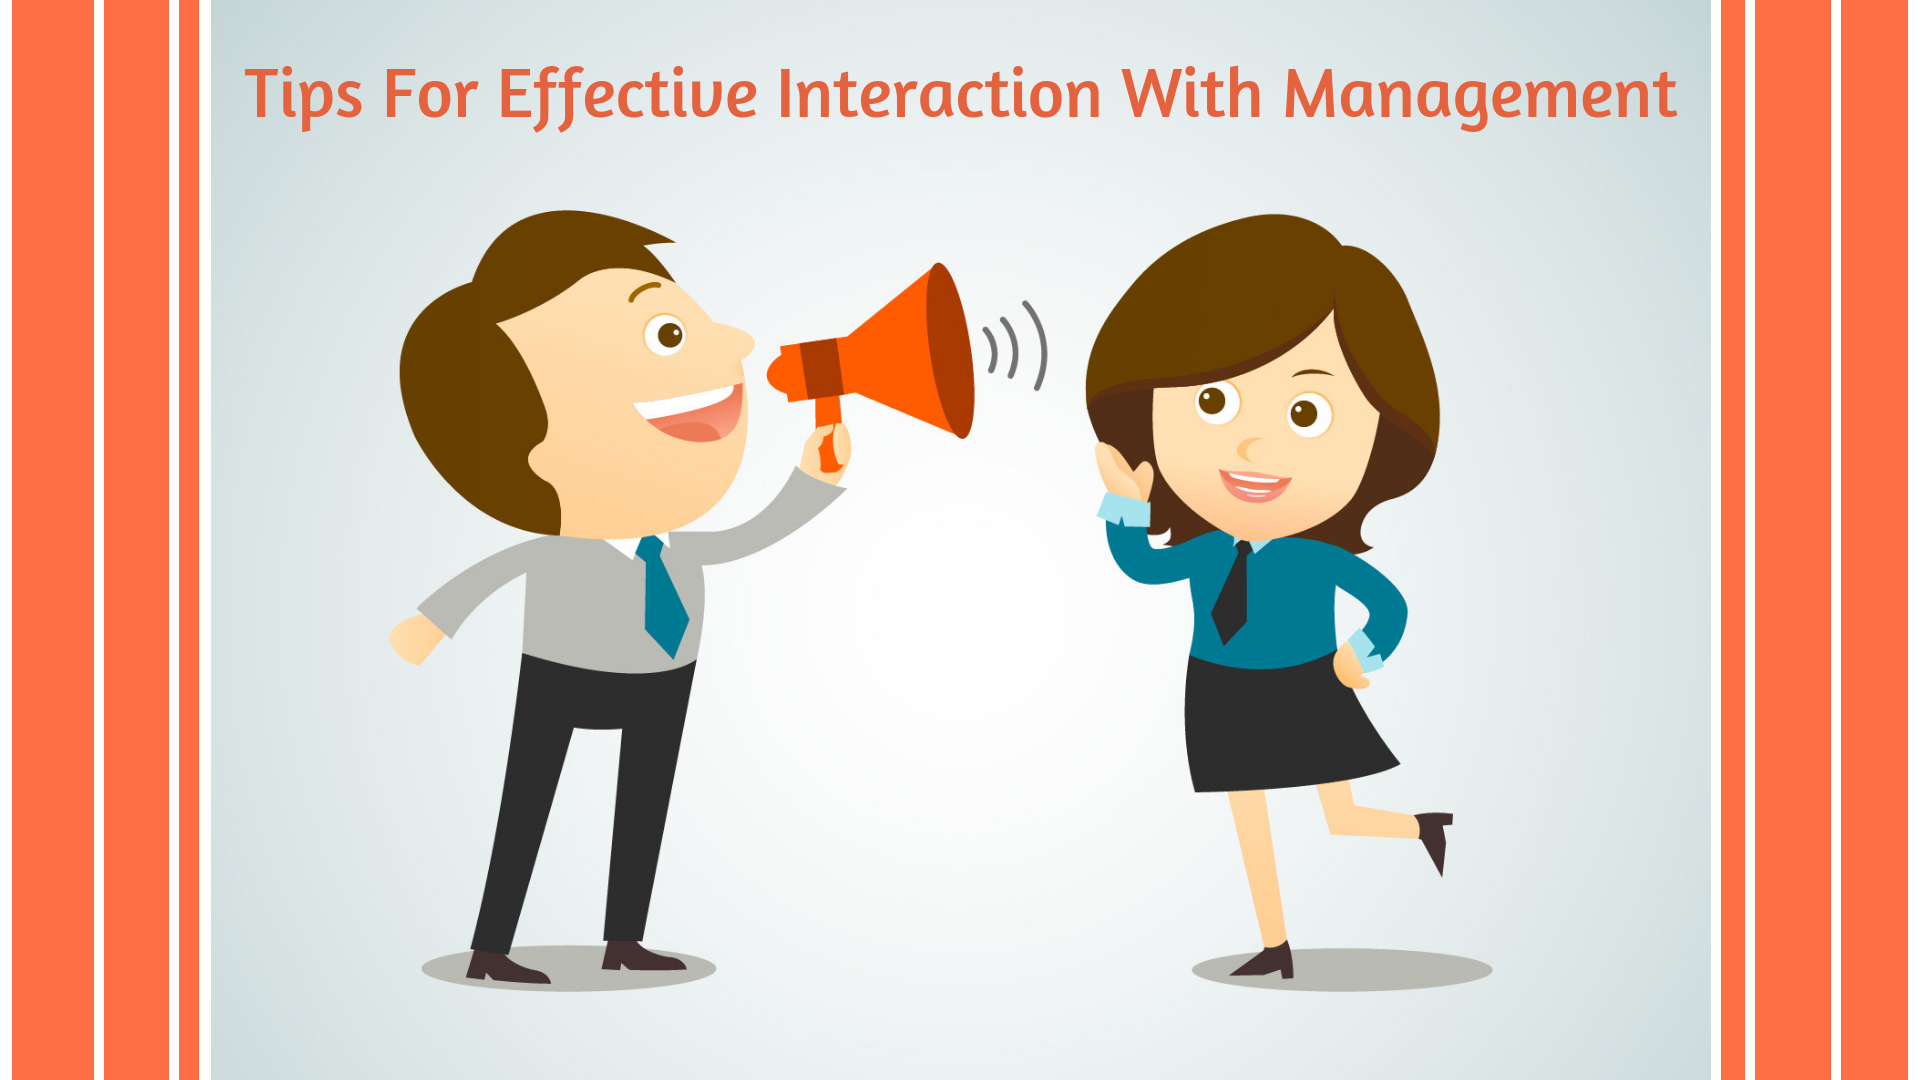 Tips for effective interaction with management